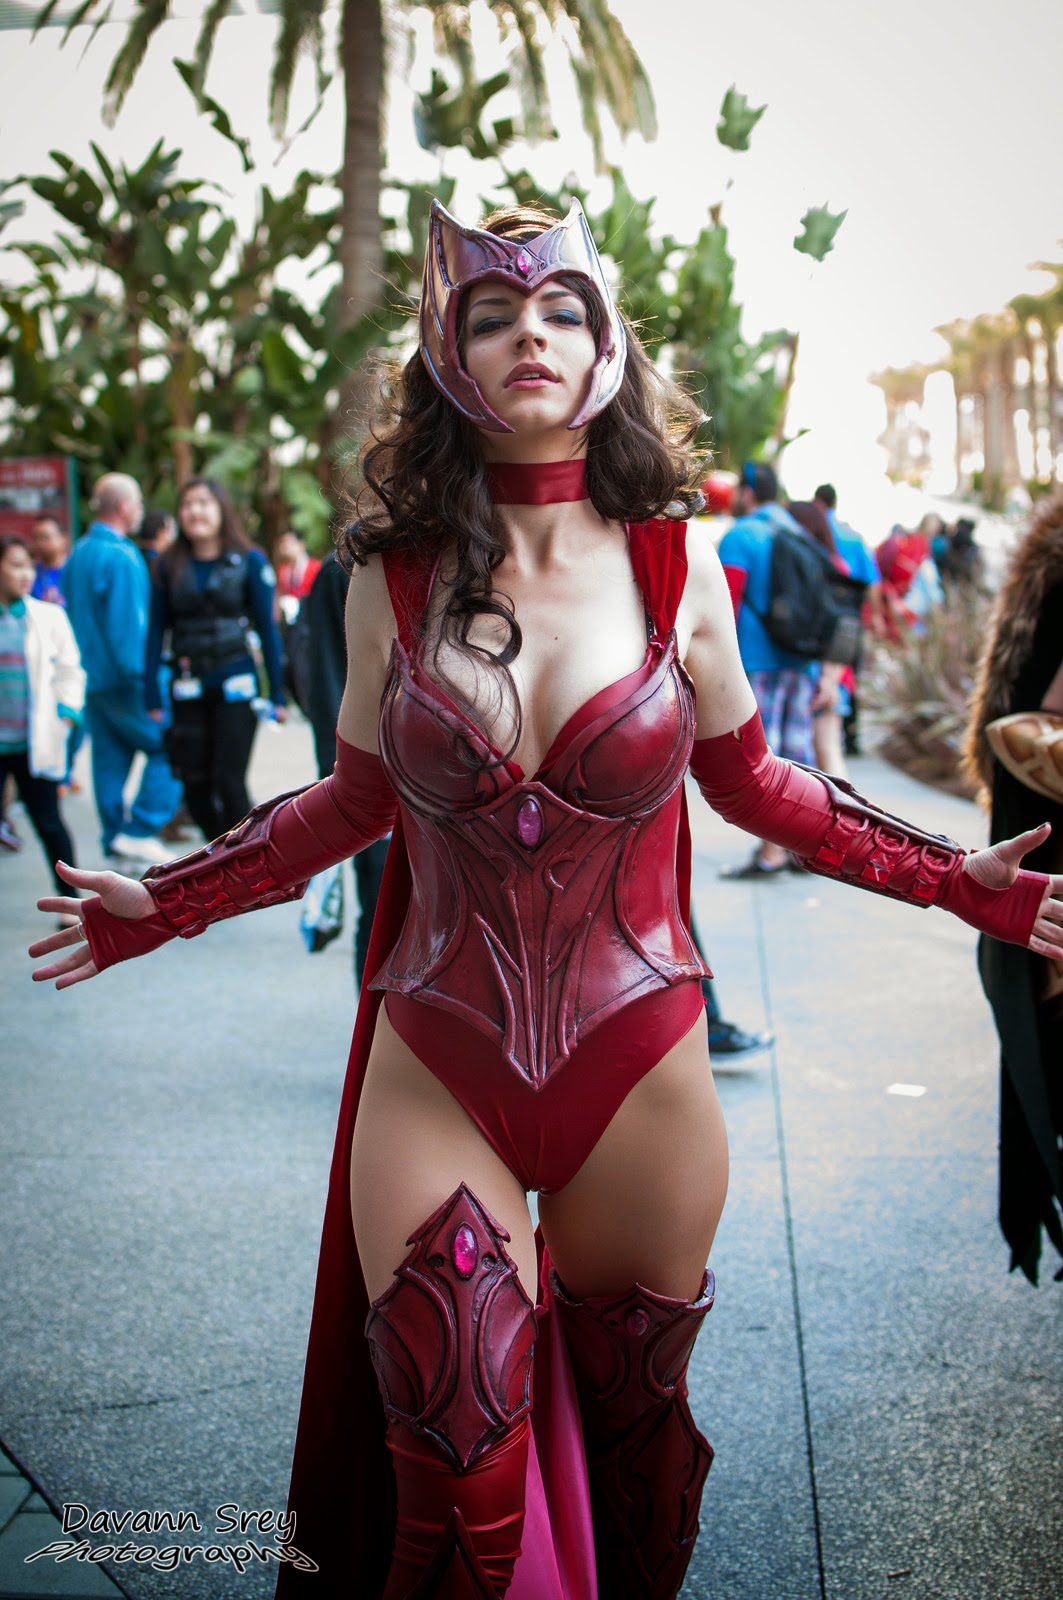 photo de cosplay de la wondercon 2014 de scarlett witch